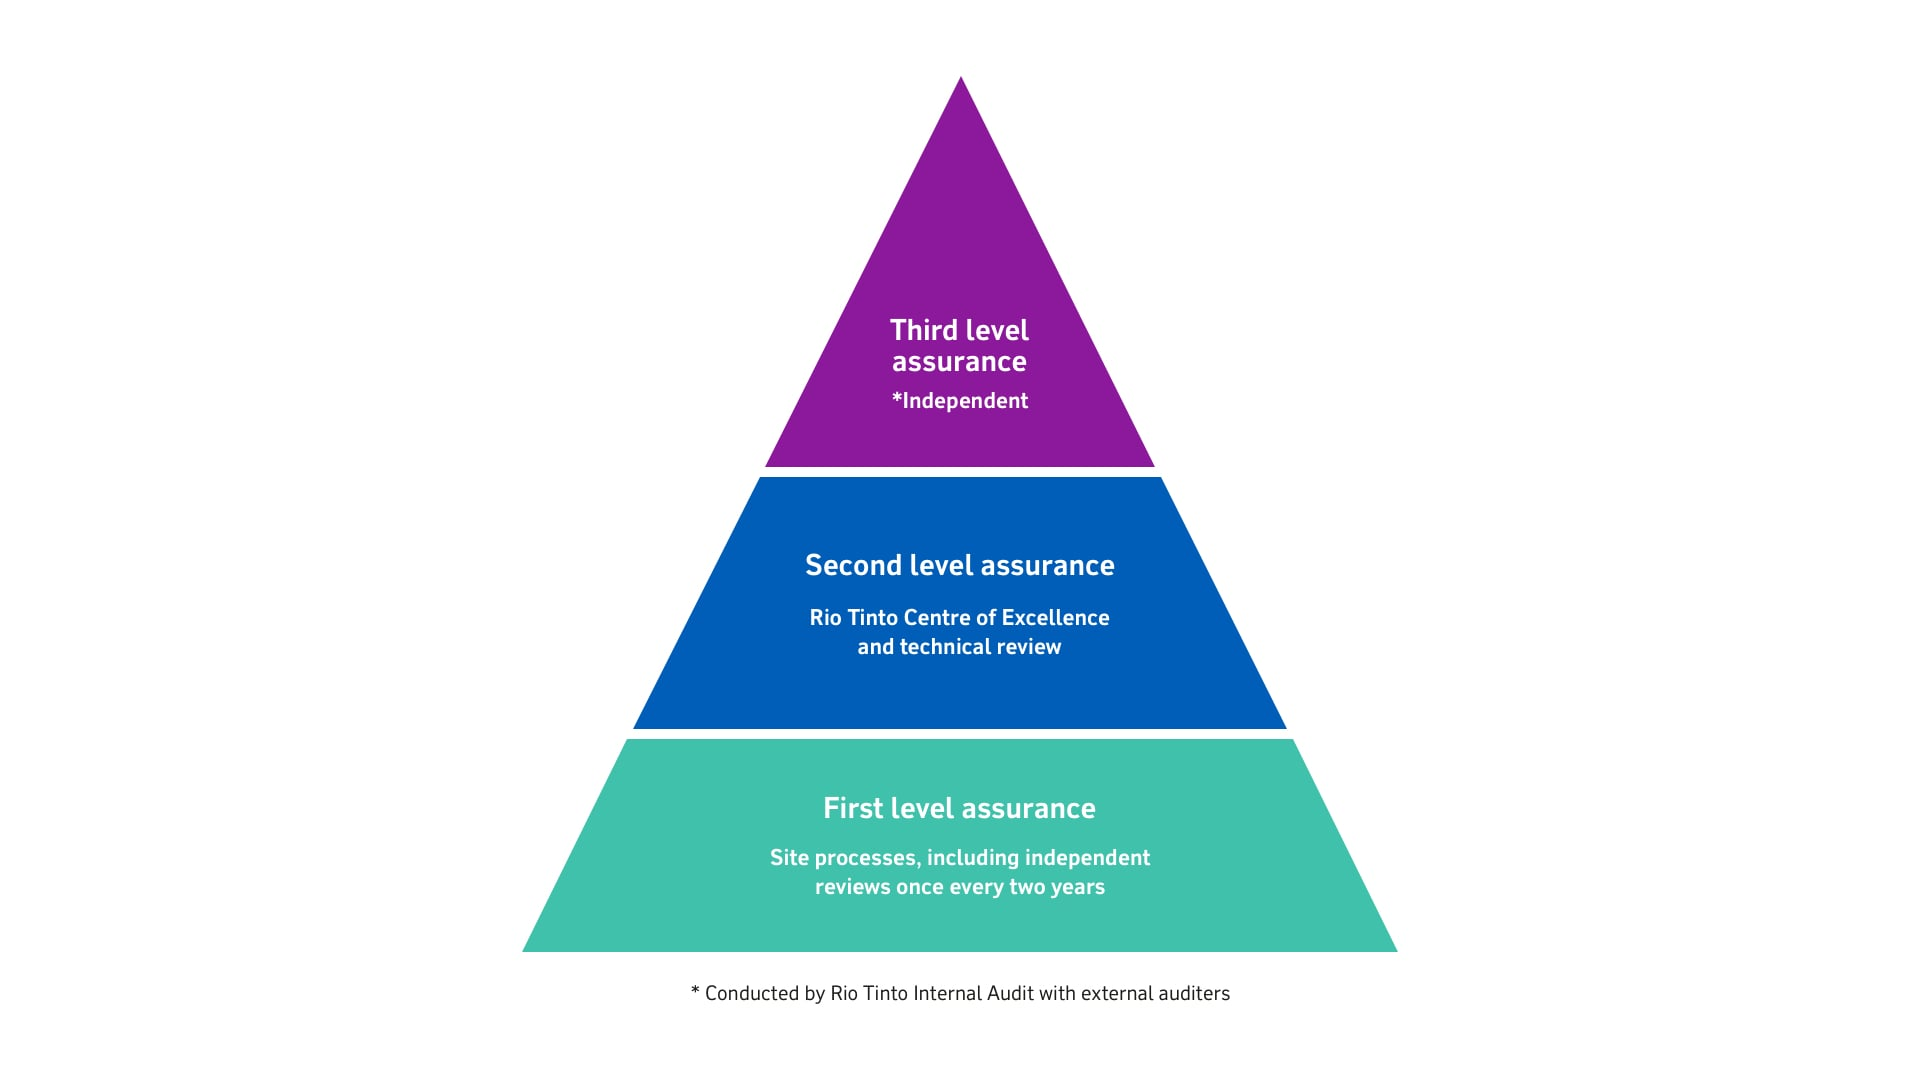 Three levels of tailings risk management - pyramid diagram